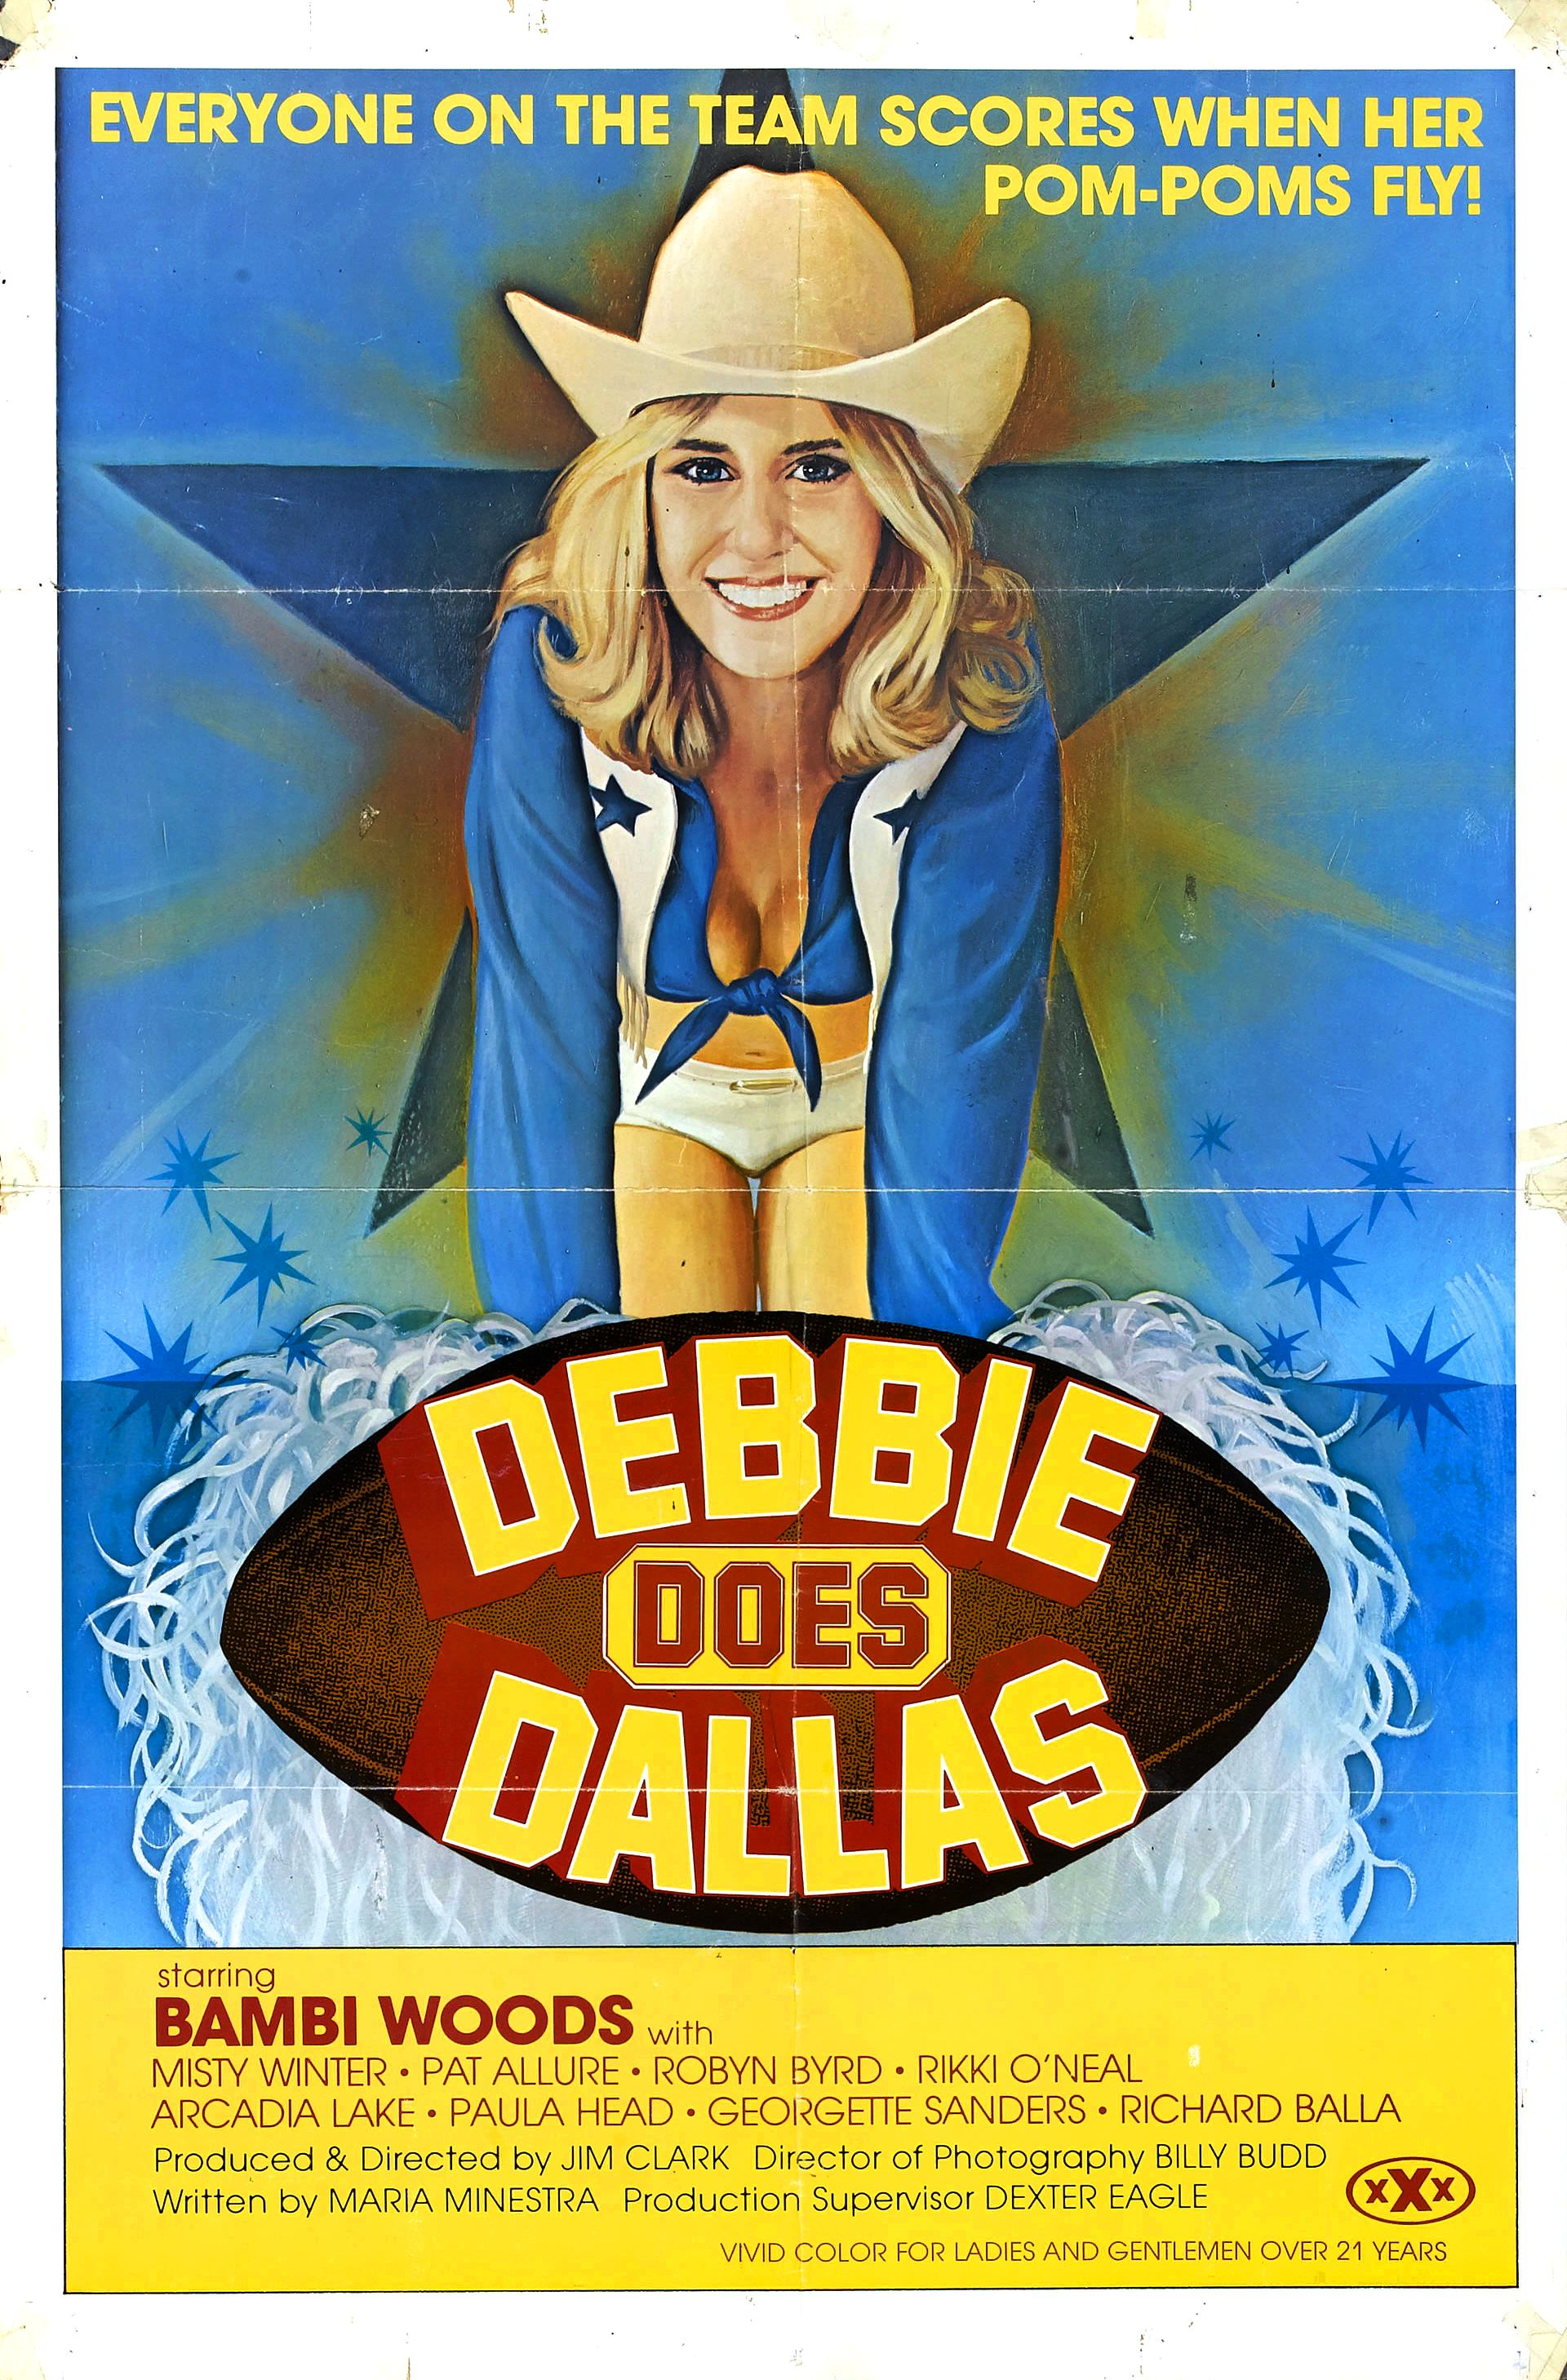 Debbie Does Dallas had 113 illegale liefhebbers